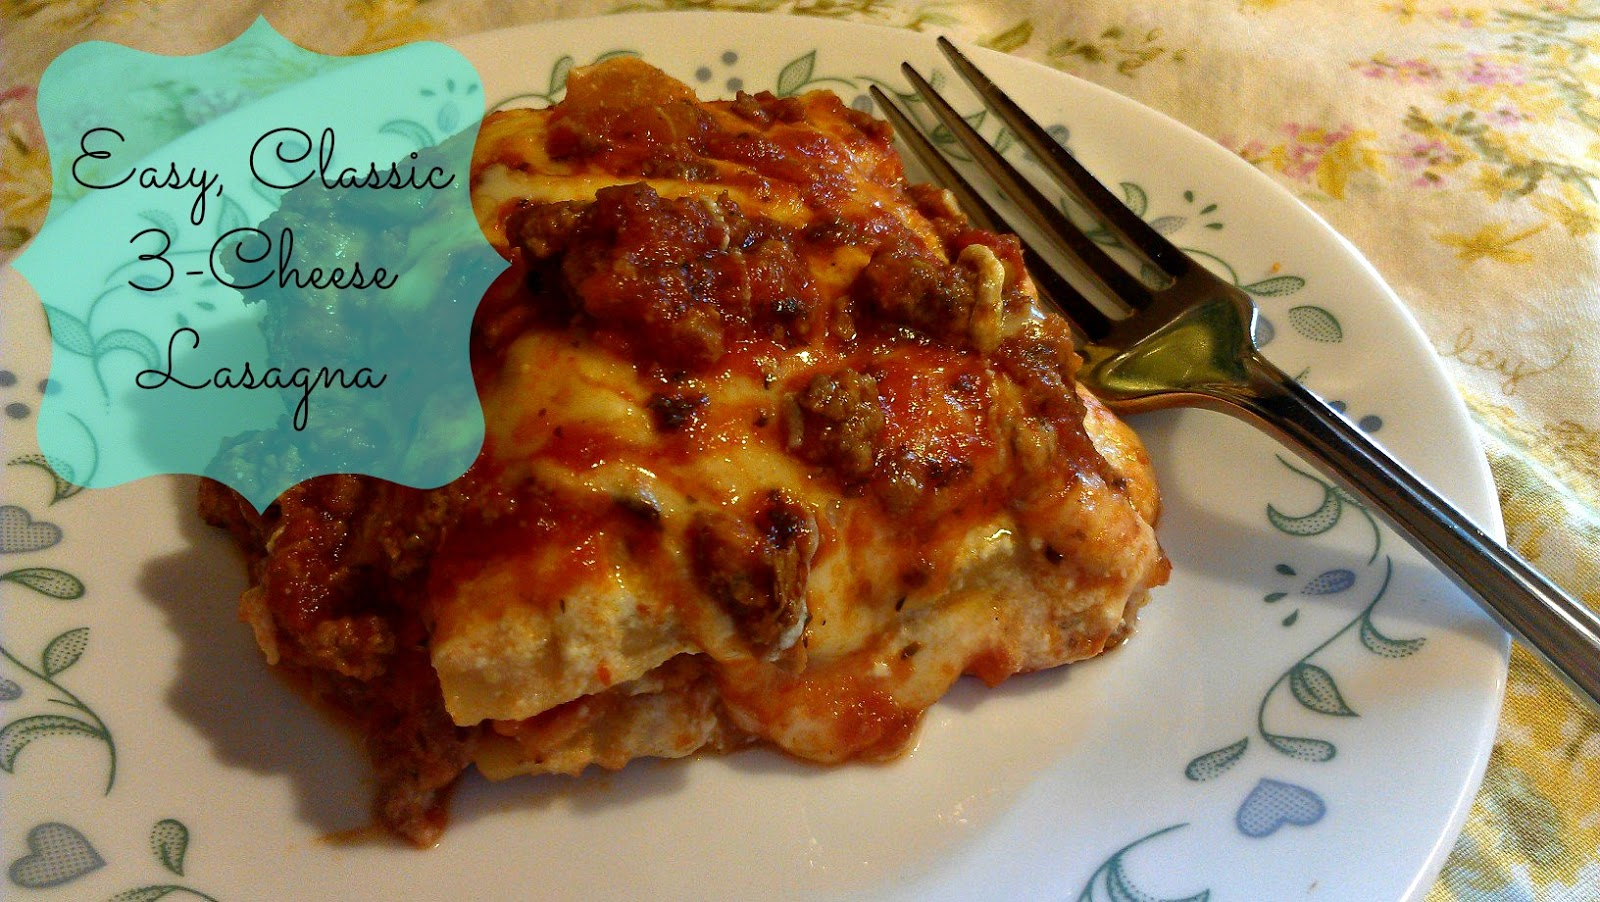 Journeys with Juju: Easy, Classic 3-Cheese Lasagna